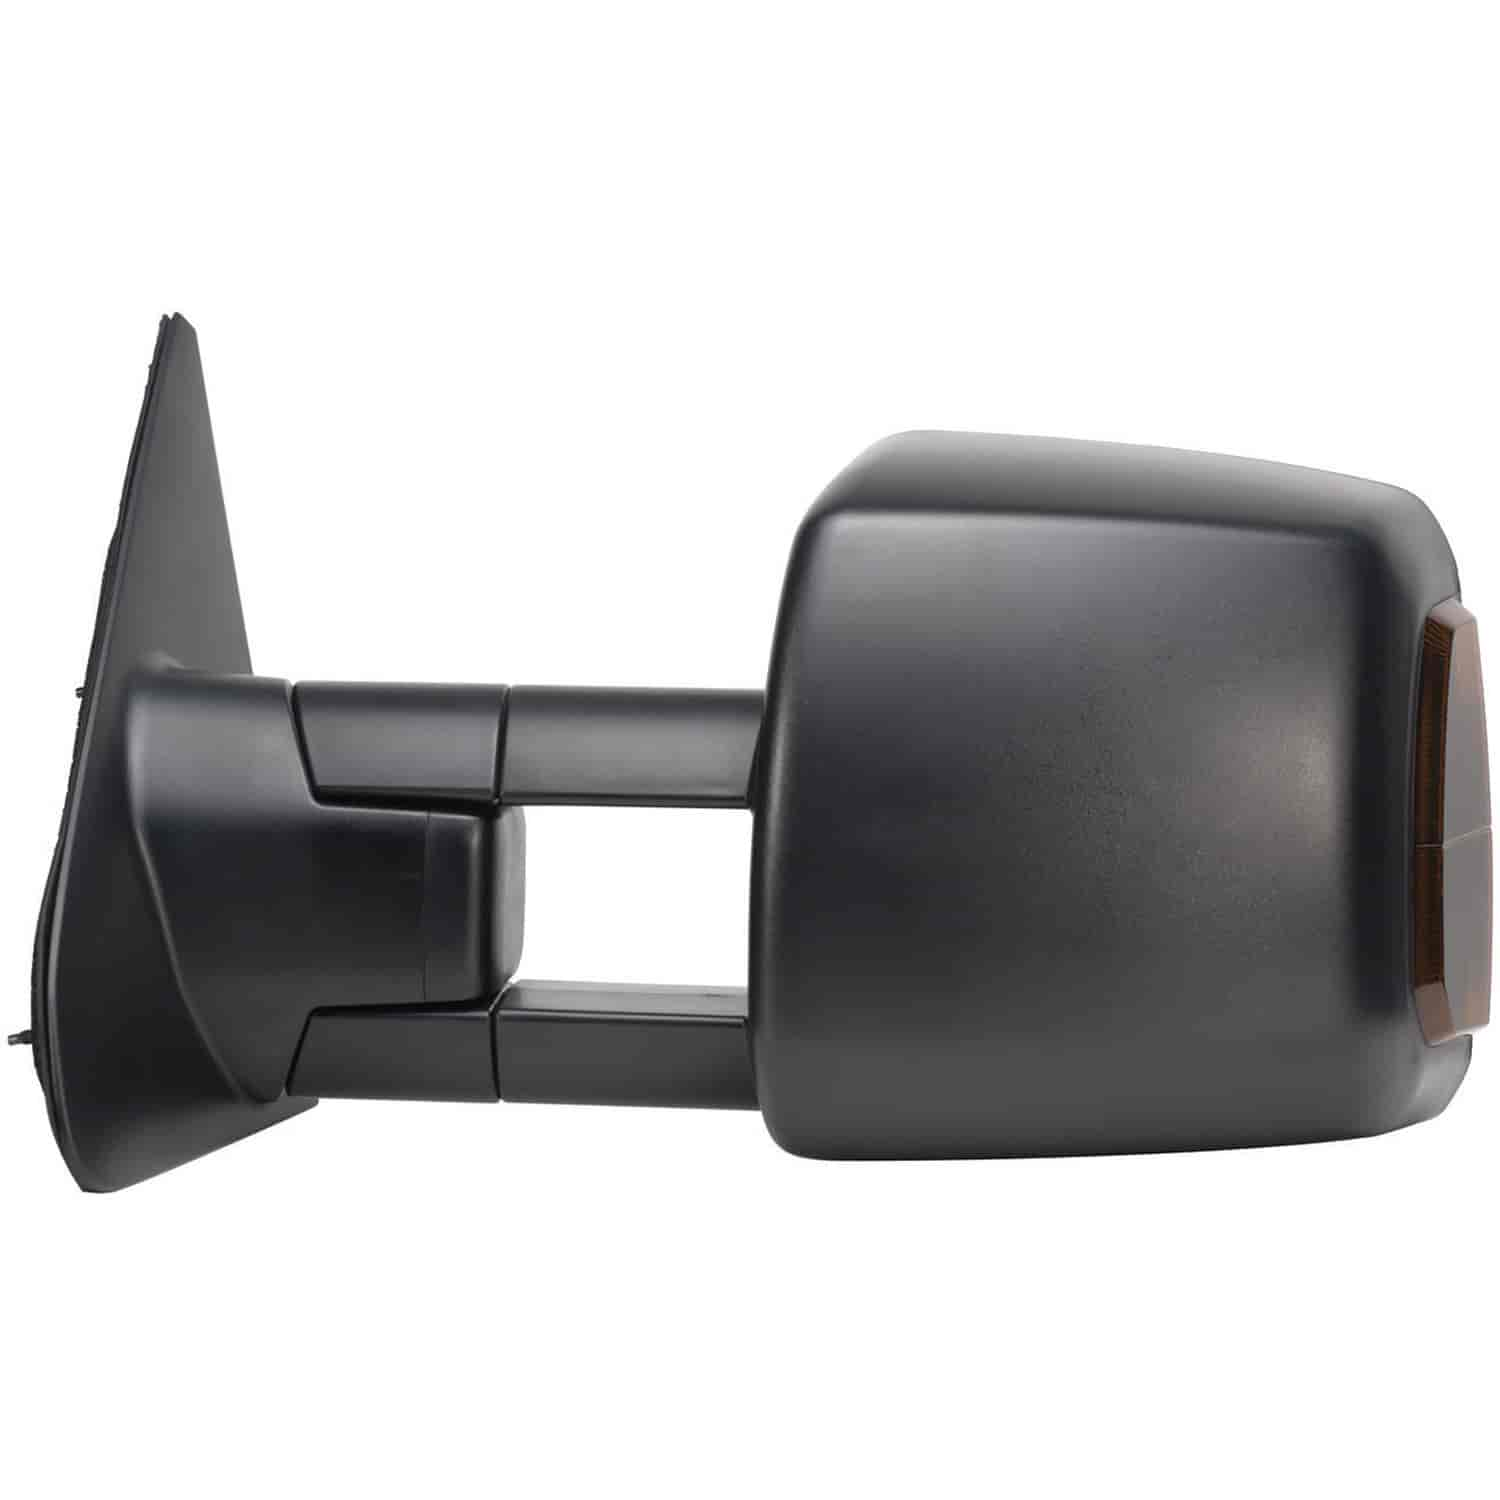 K Source 70104t Oem Style Replacement Mirror For 07 14